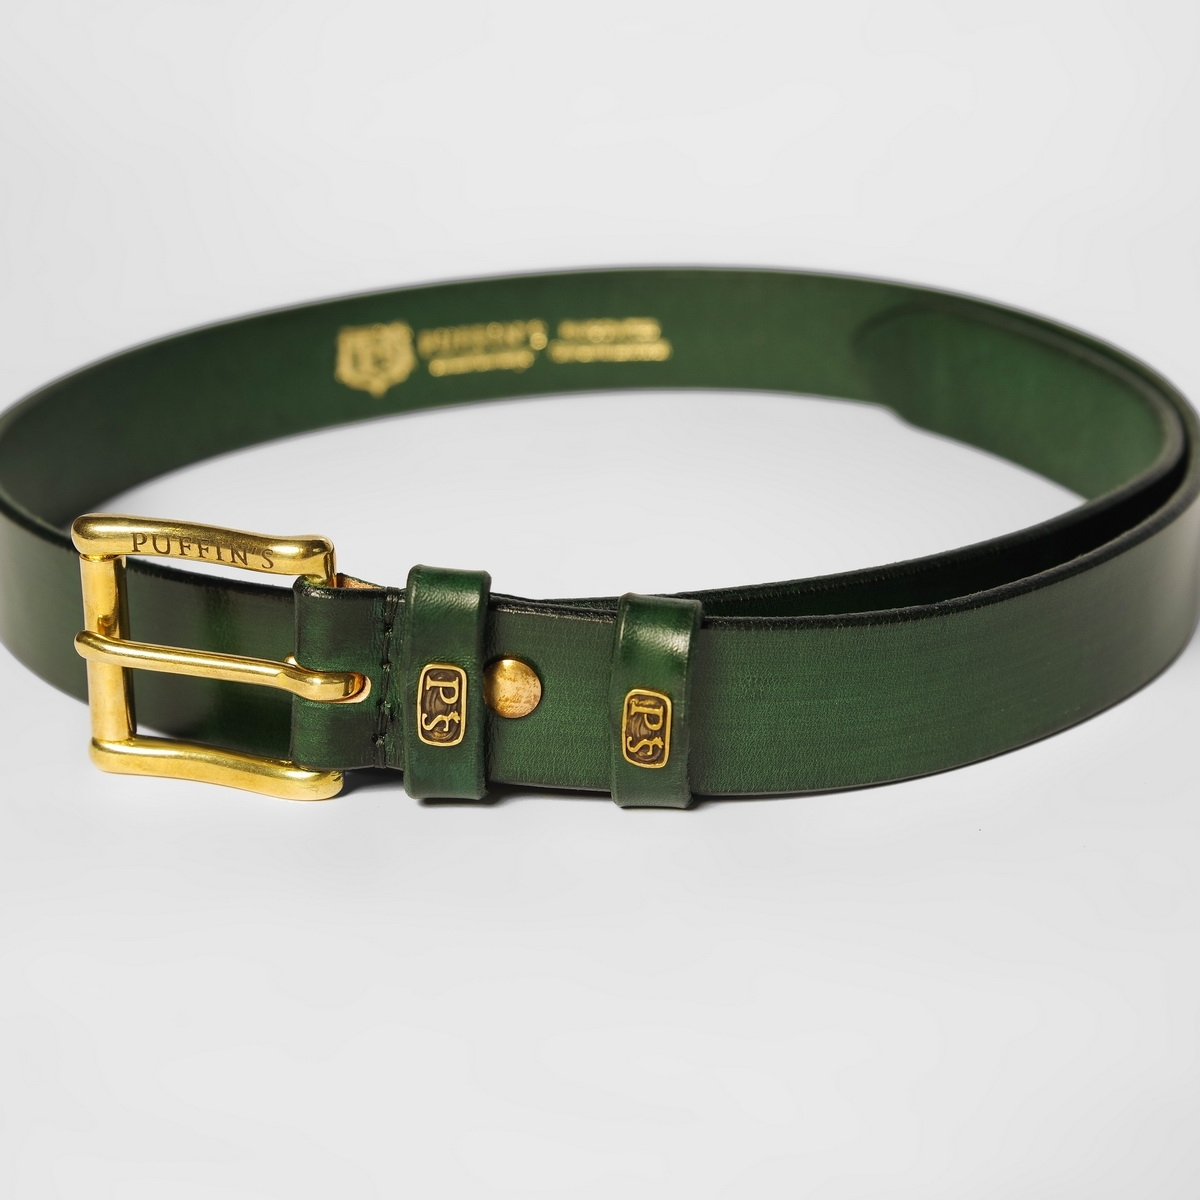 32mm traditional belt with brass buckle grassy green